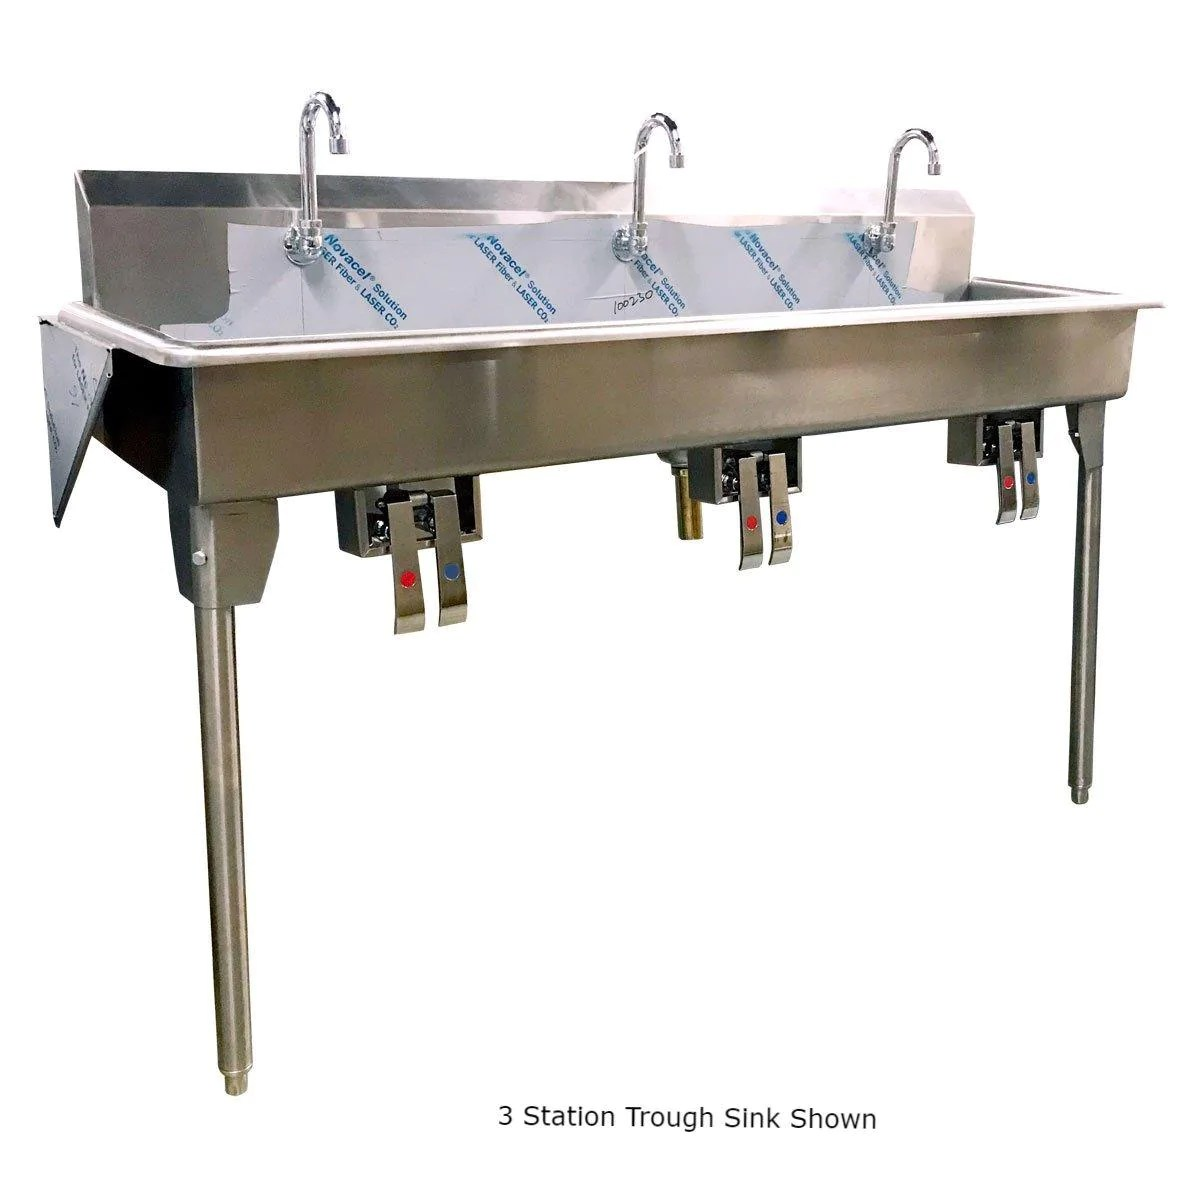 nella 72 x 14 x 7 four station trough hand sink with knee pedals and spouts